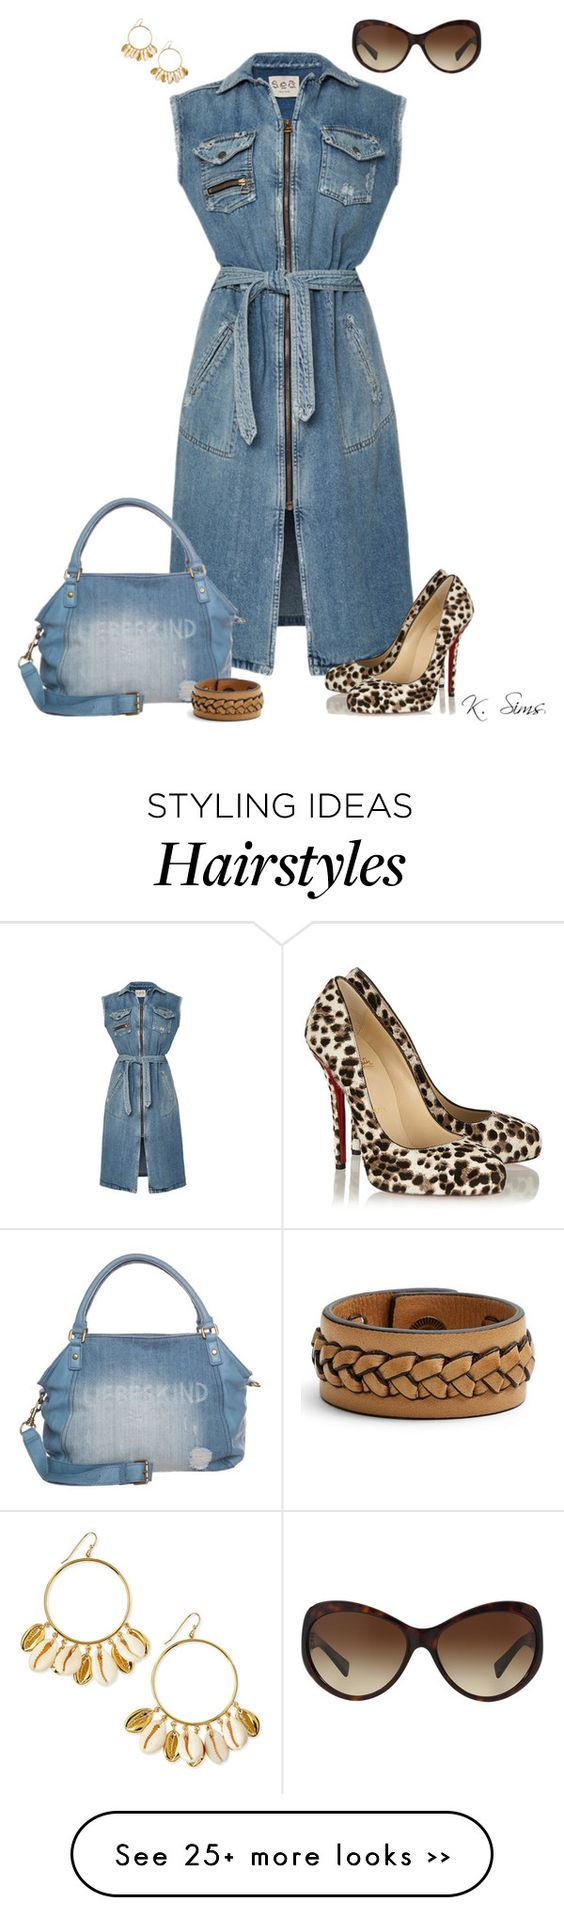 """Double Denim"" by ksims-1 on Polyvore:"